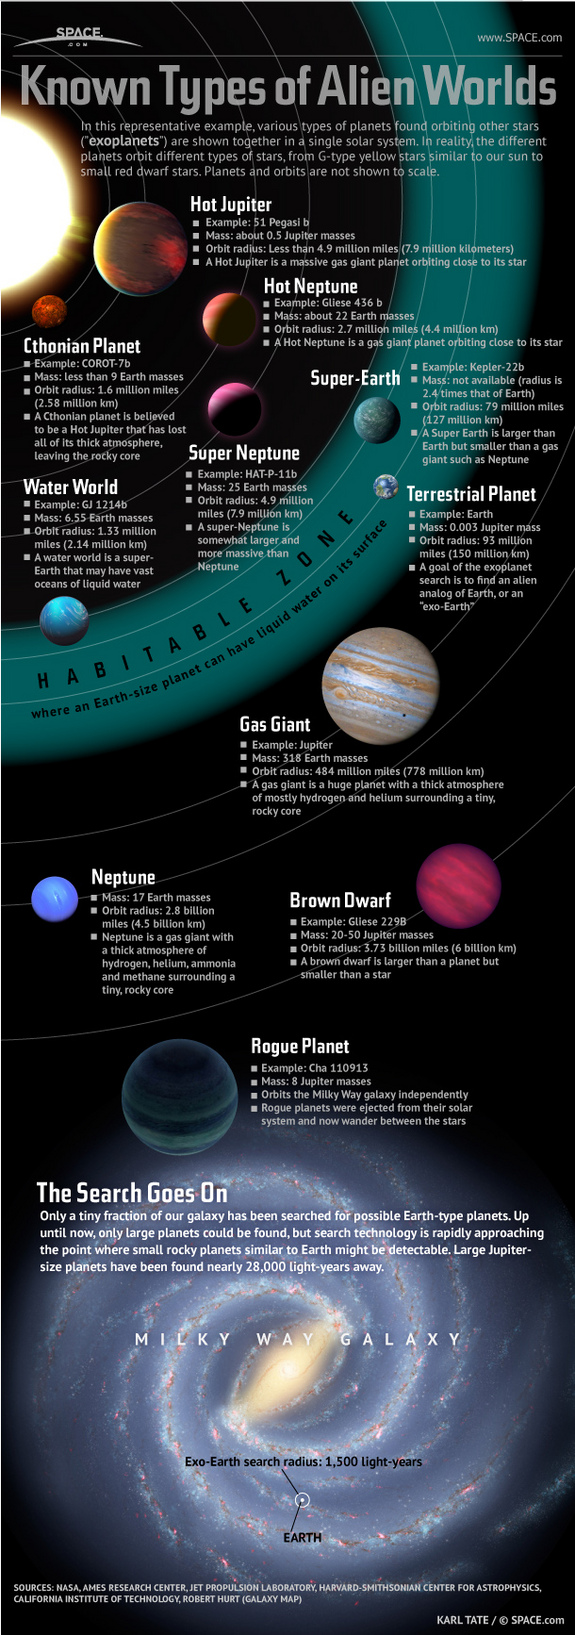 1000 images about planets exoplanets on pinterest planets gas giant and nasa - Galaxy and planets ...